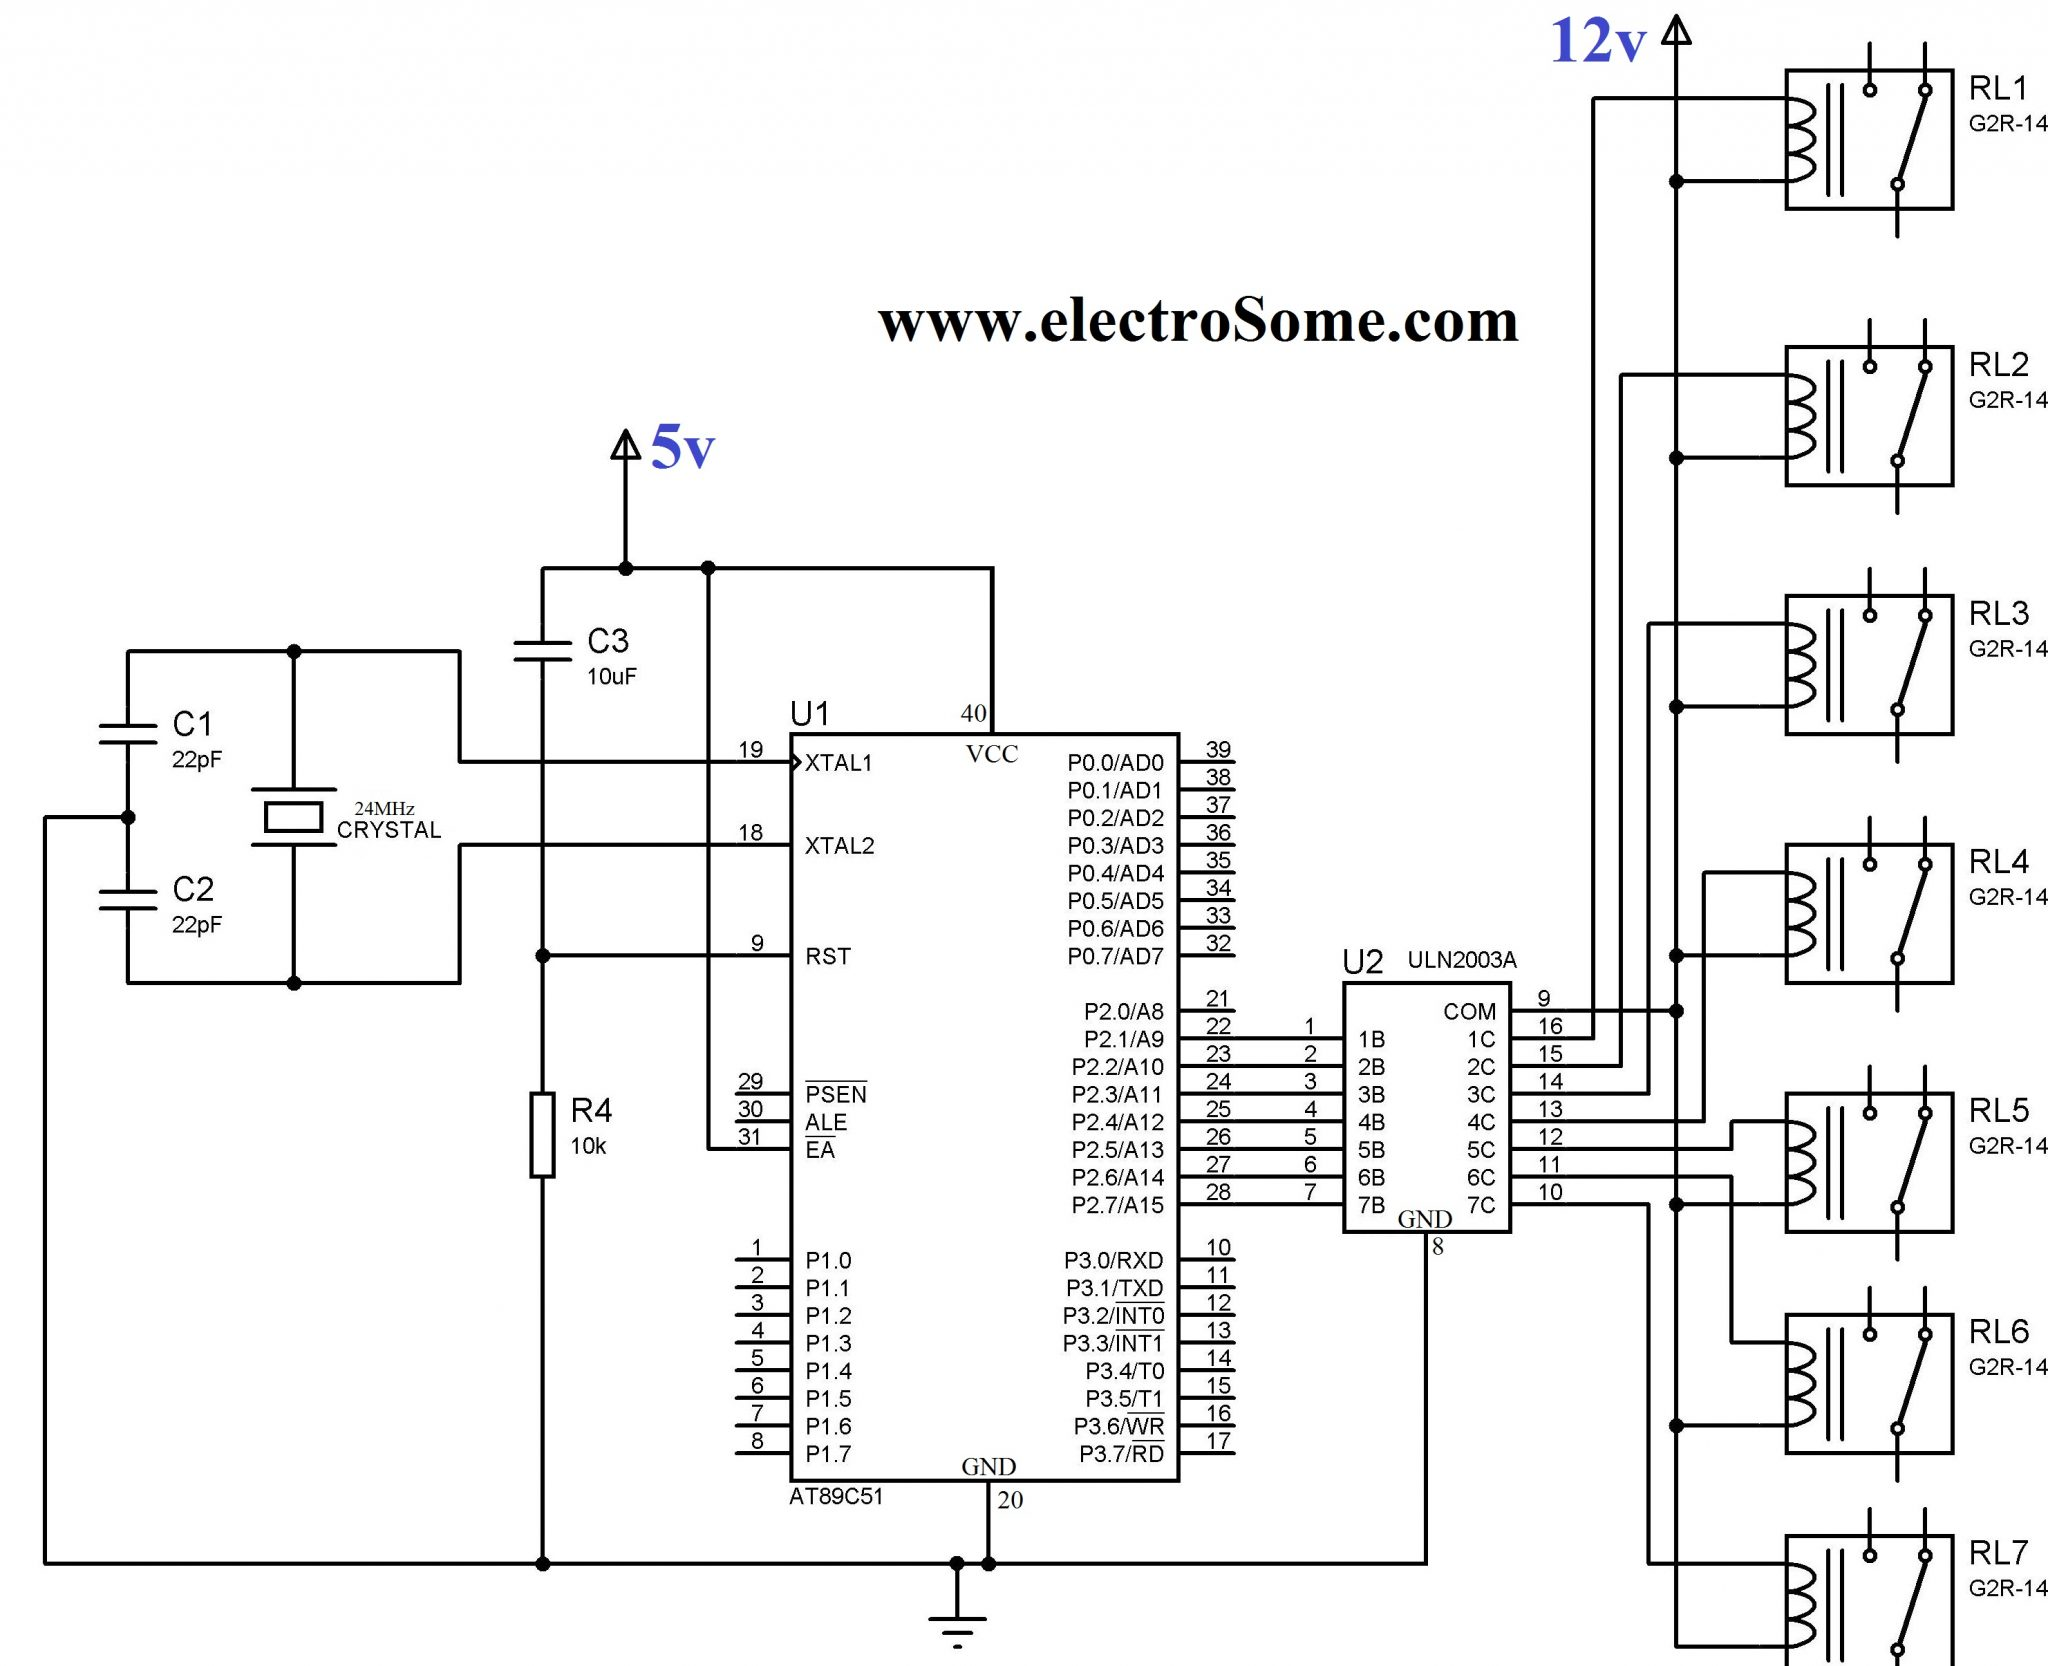 Circuit Diagram. Interfacing Relay with 8051 using ULN2003